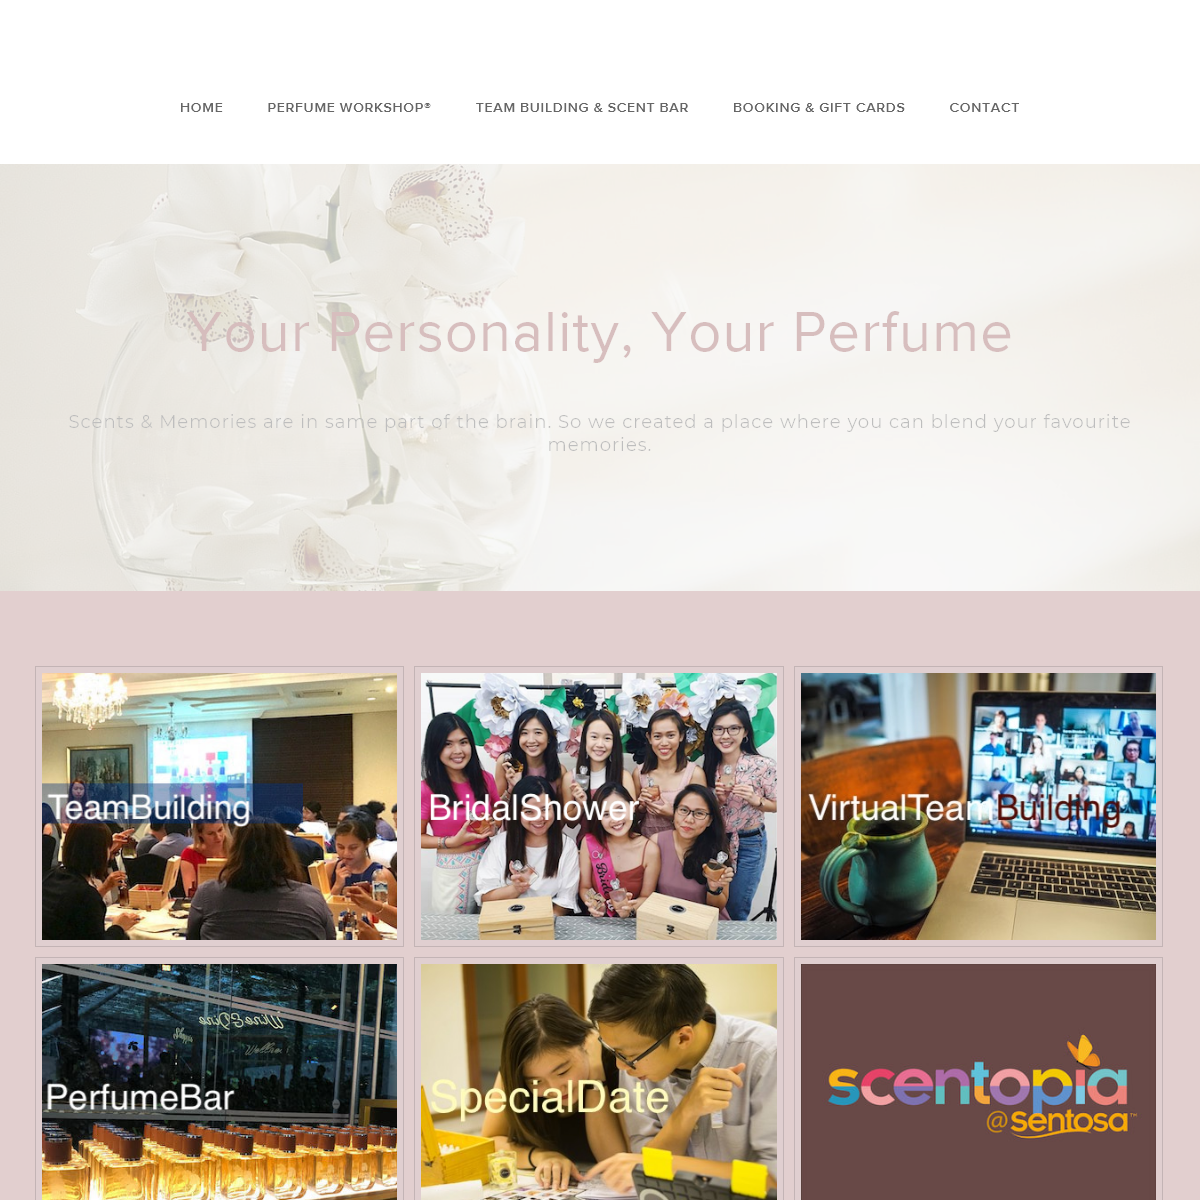 Where to make customised perfume for Bridal, corporate team building & couple singapore